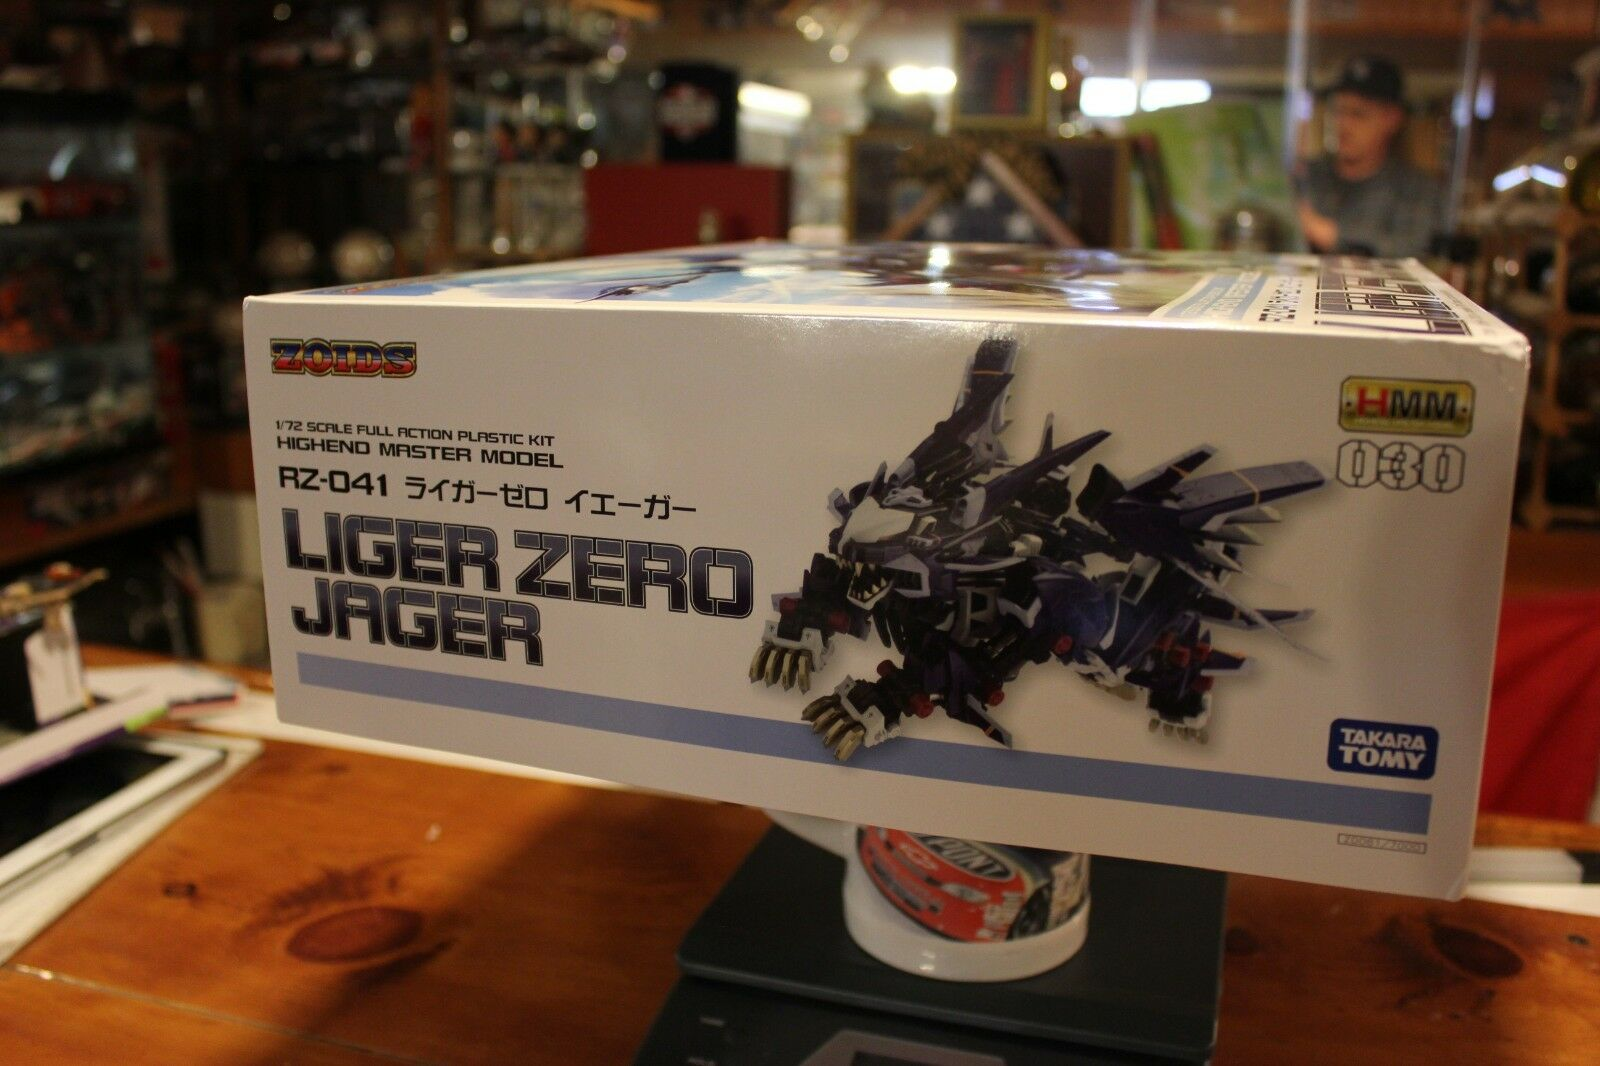 Zoids HMM 030 RZ-041 Liger Zero Box Jager Mint in Box Zero cc6071